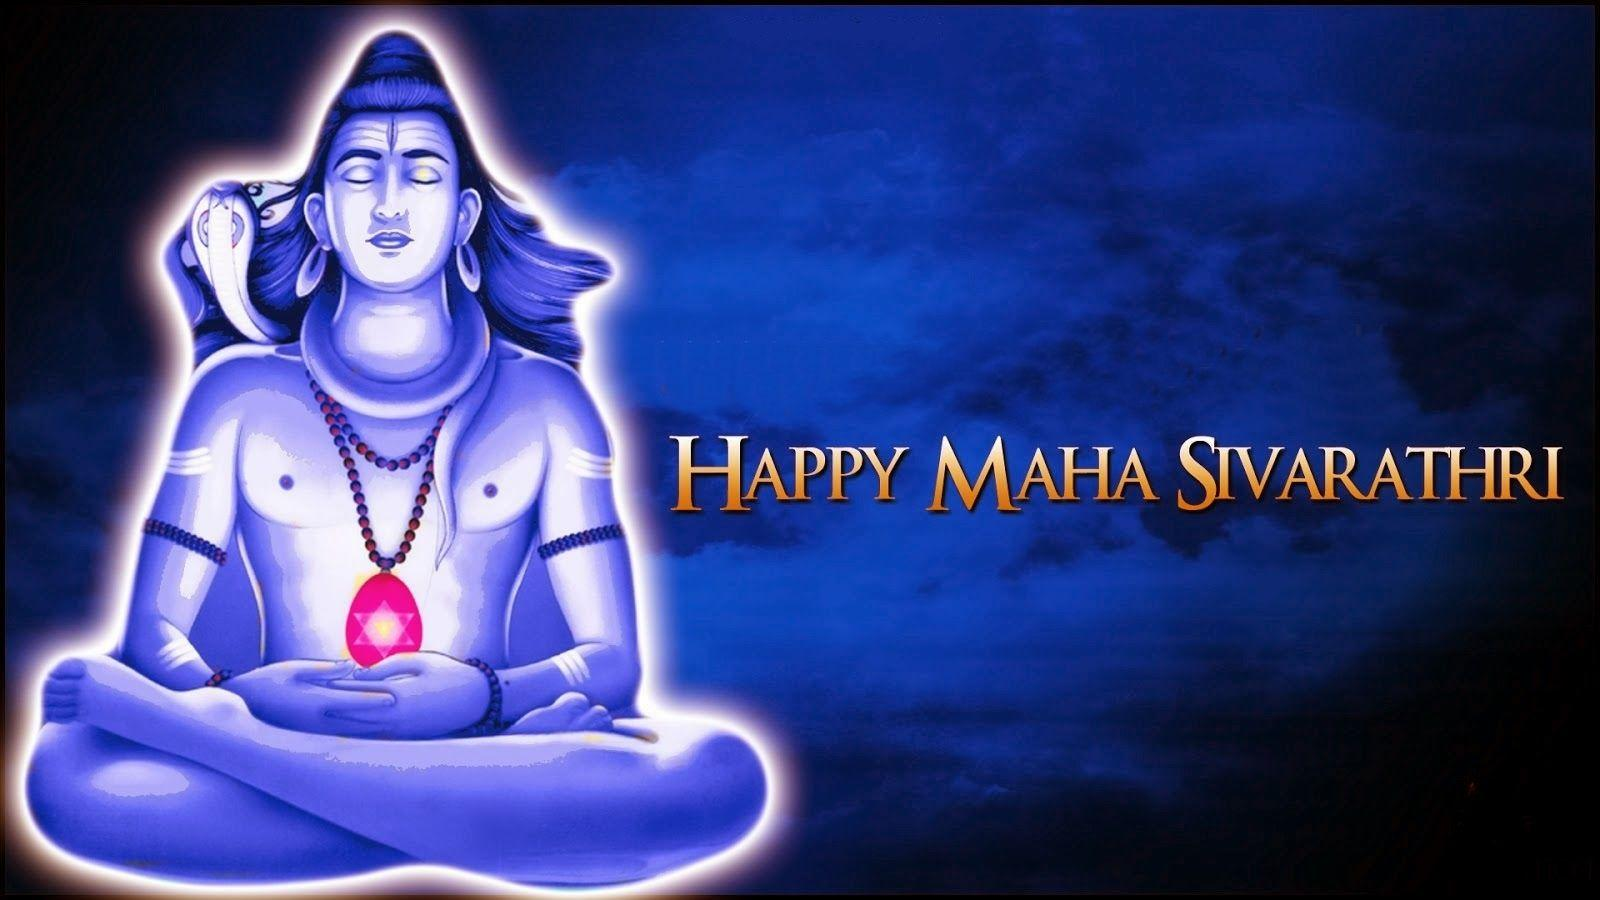 Happy Maha Shivratri Images, Pics, Photos & Wallpapers ...